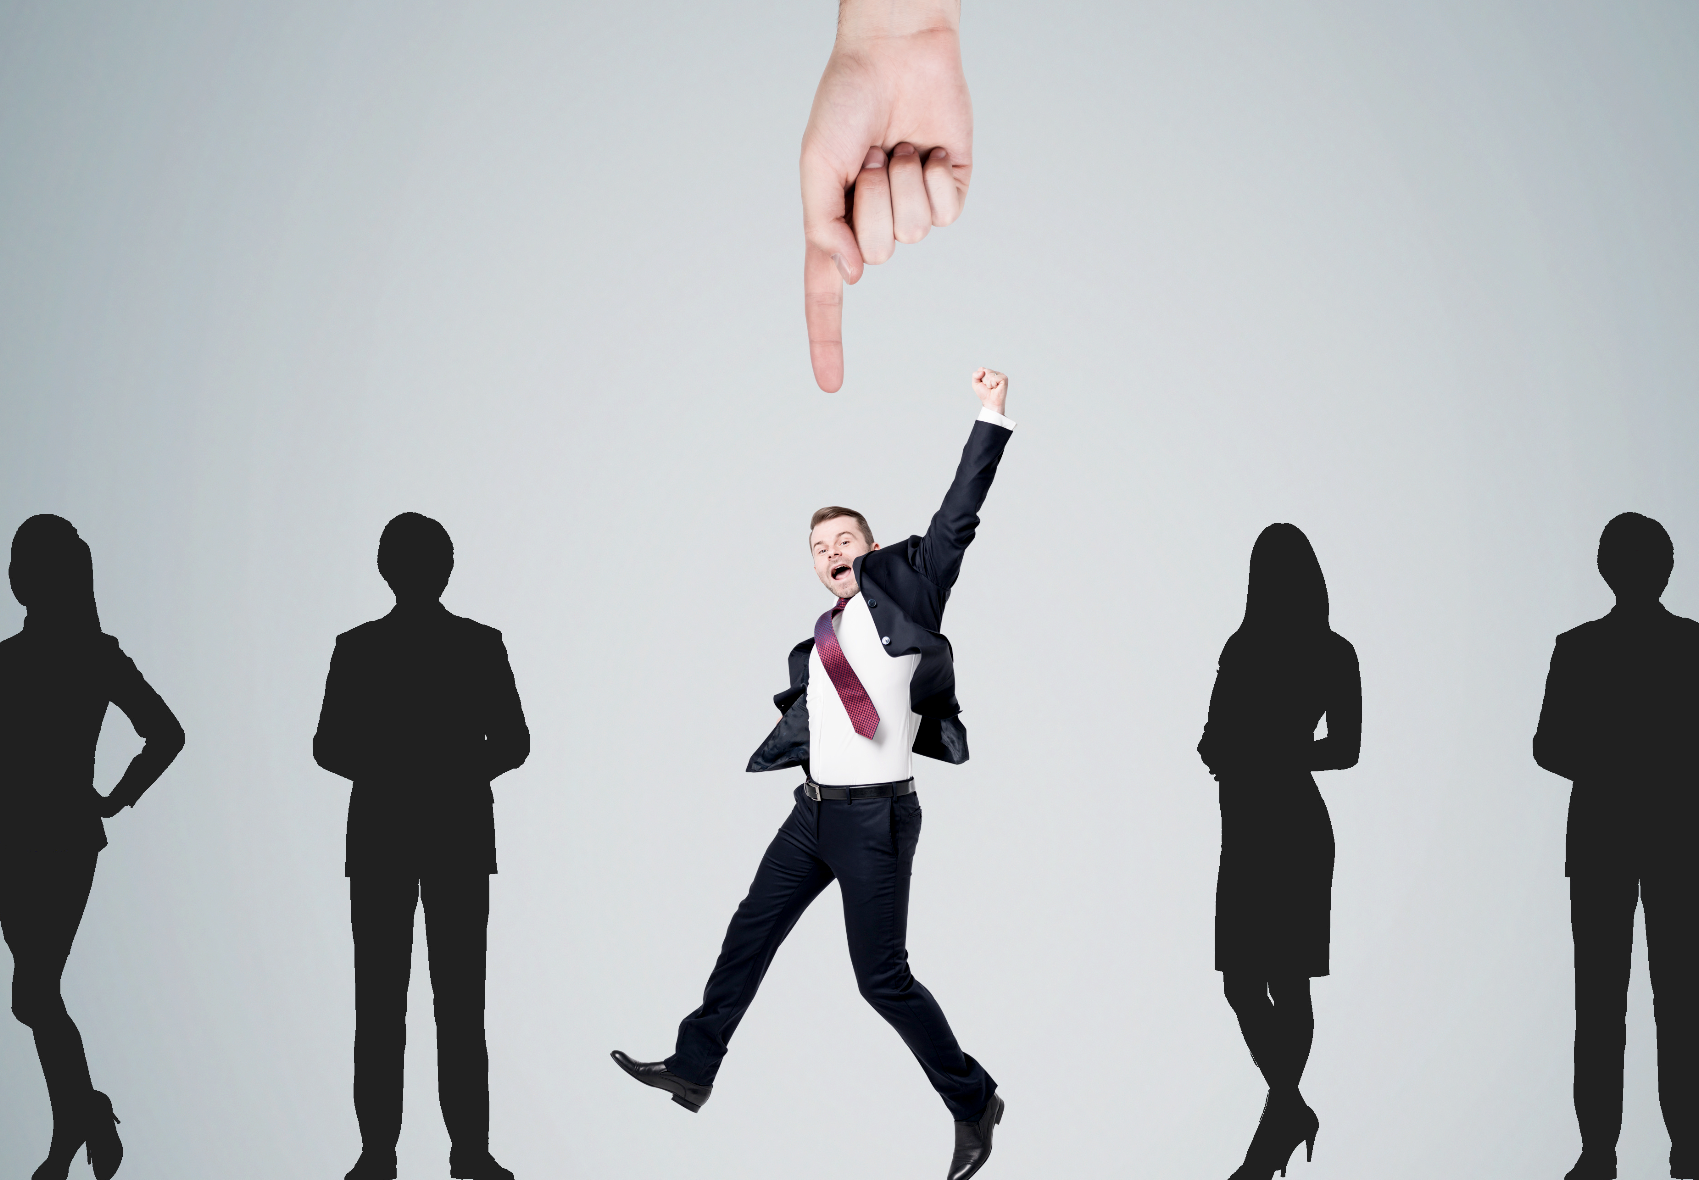 Psychological Tricks and Tips To Hire The Right Candidate - The Union  Journal